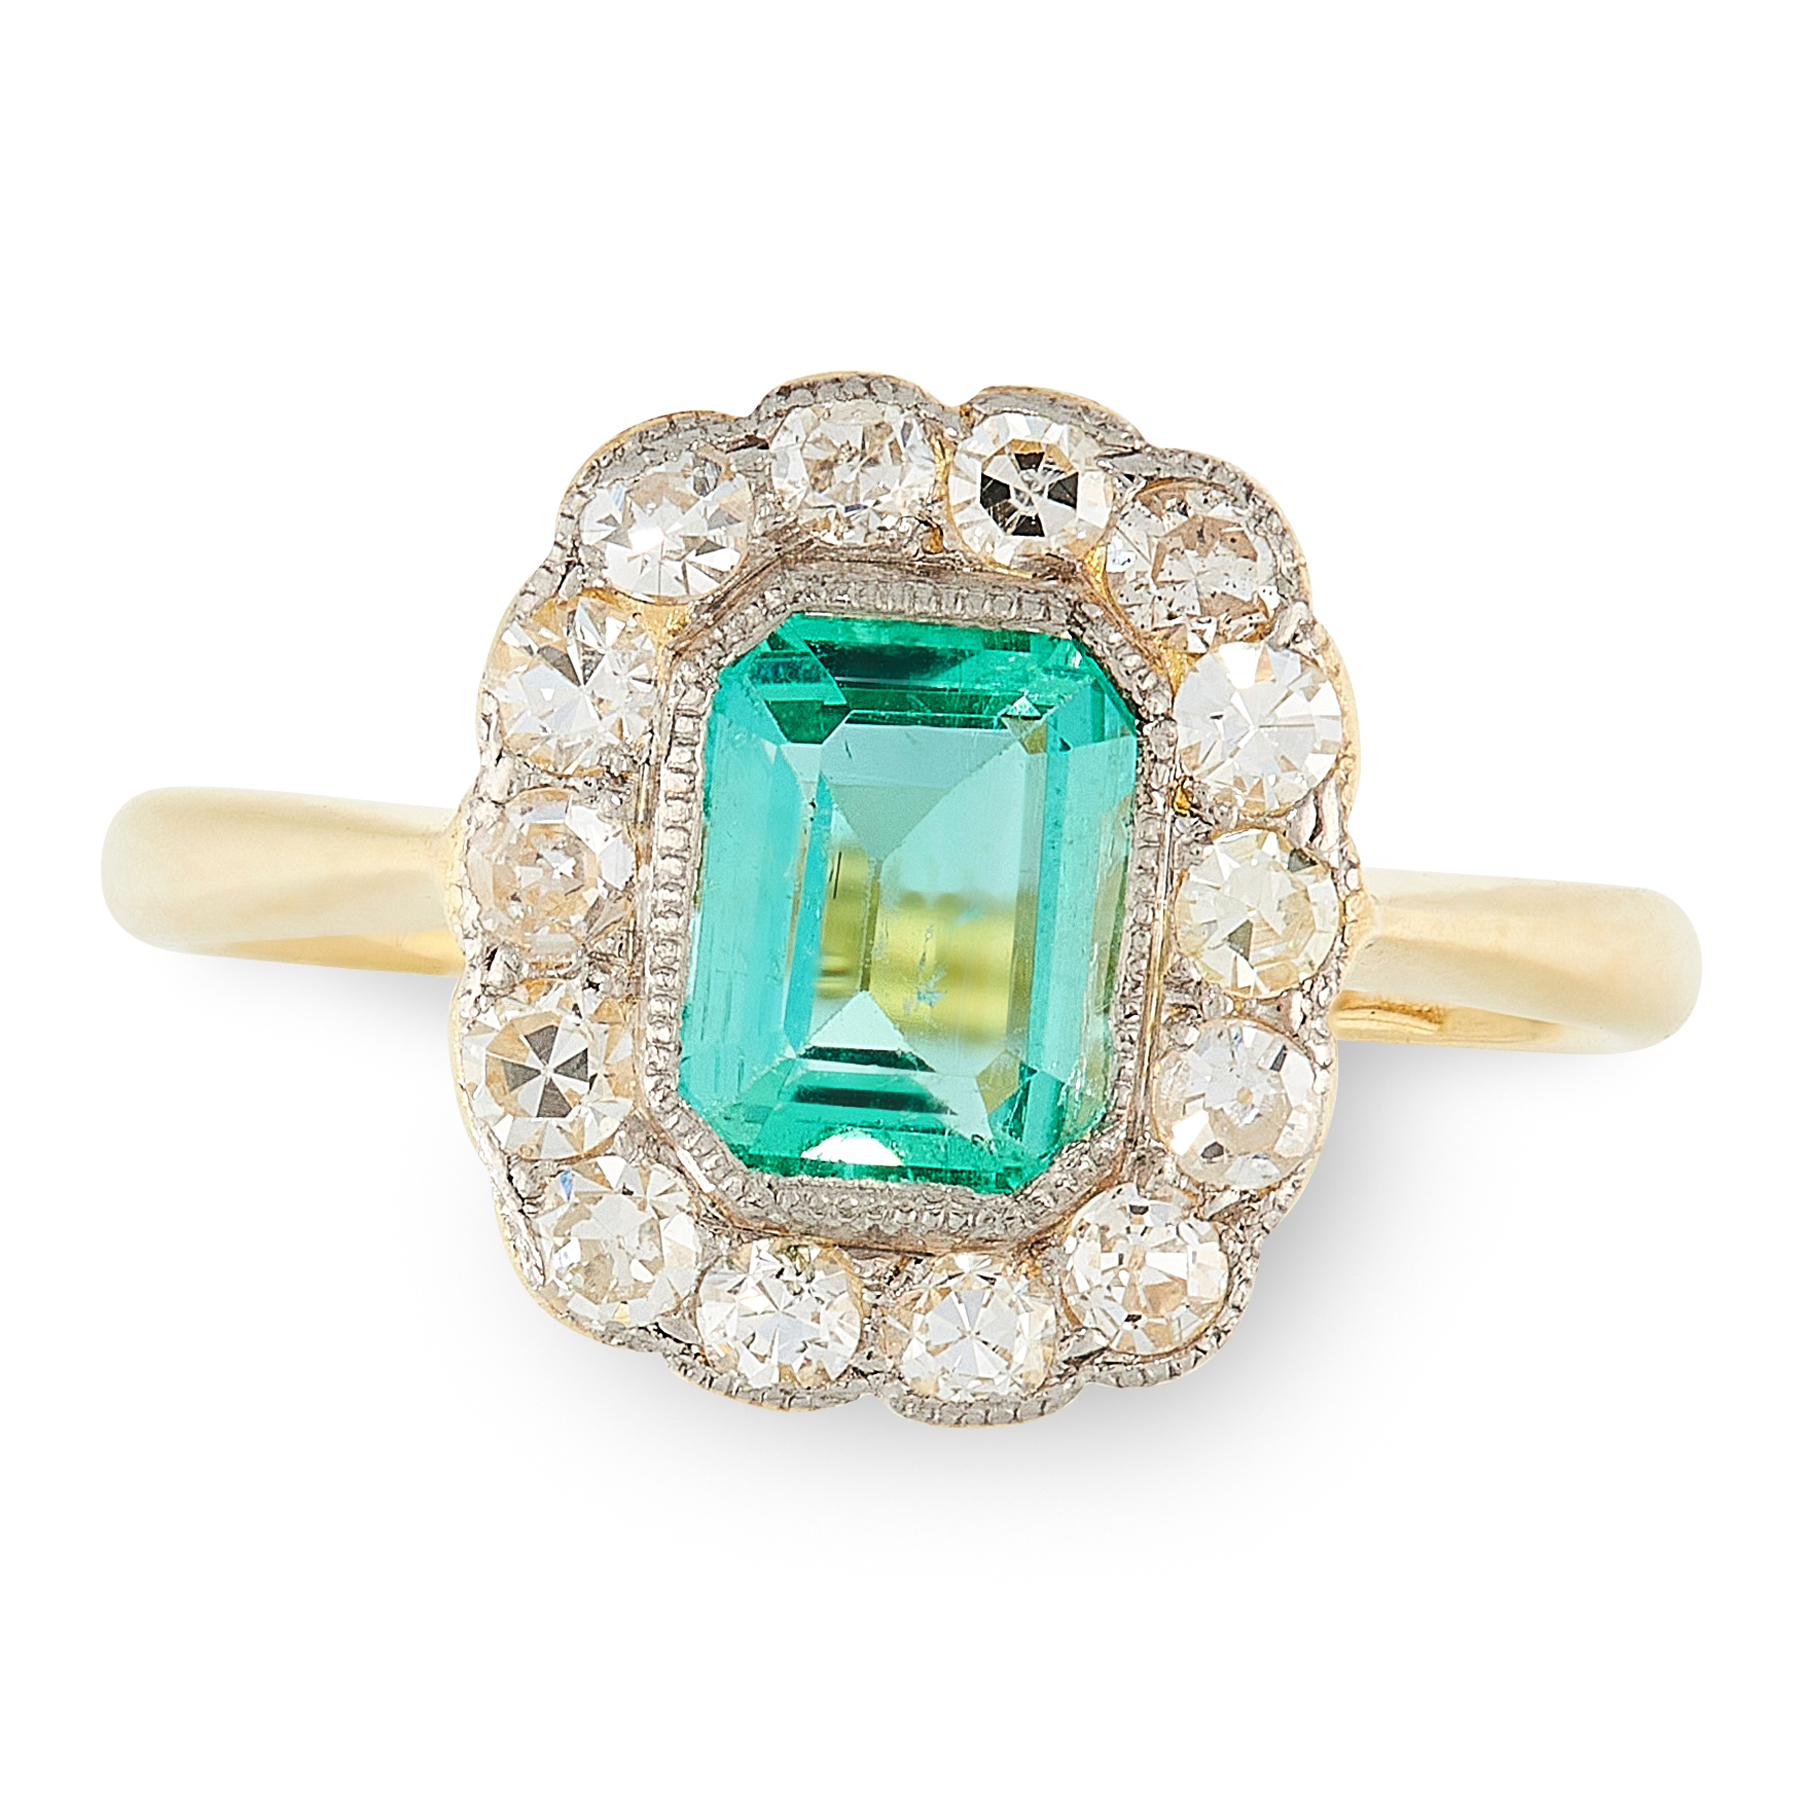 AN EMERALD AND DIAMOND CLUSTER RING in 18ct yellow gold, set with an emerald cut emerald of 0.64